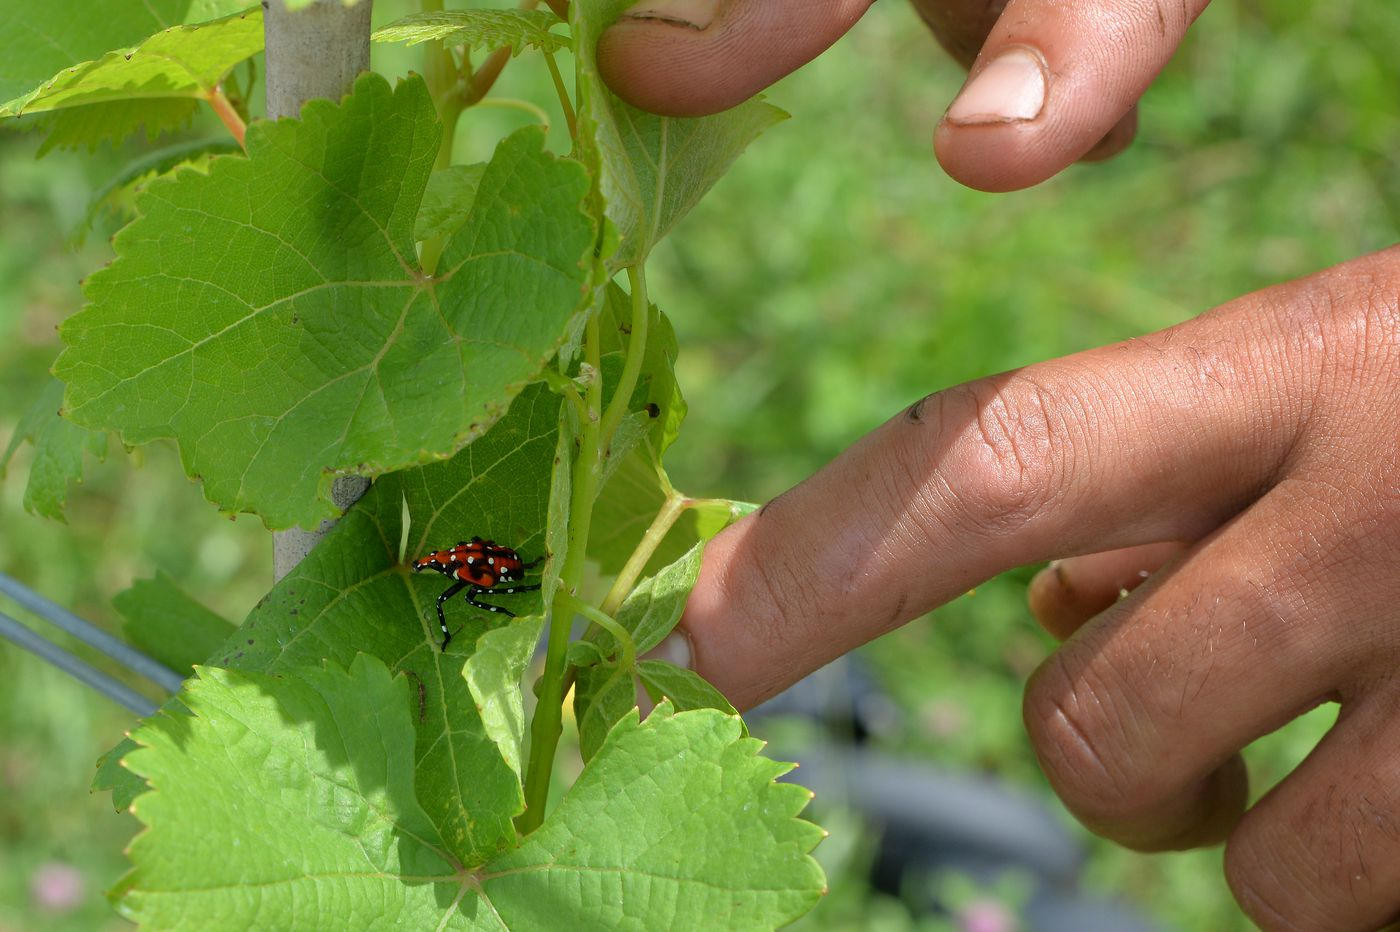 Pa., N.J. vineyards brace for invasion of the spotted lanternflies